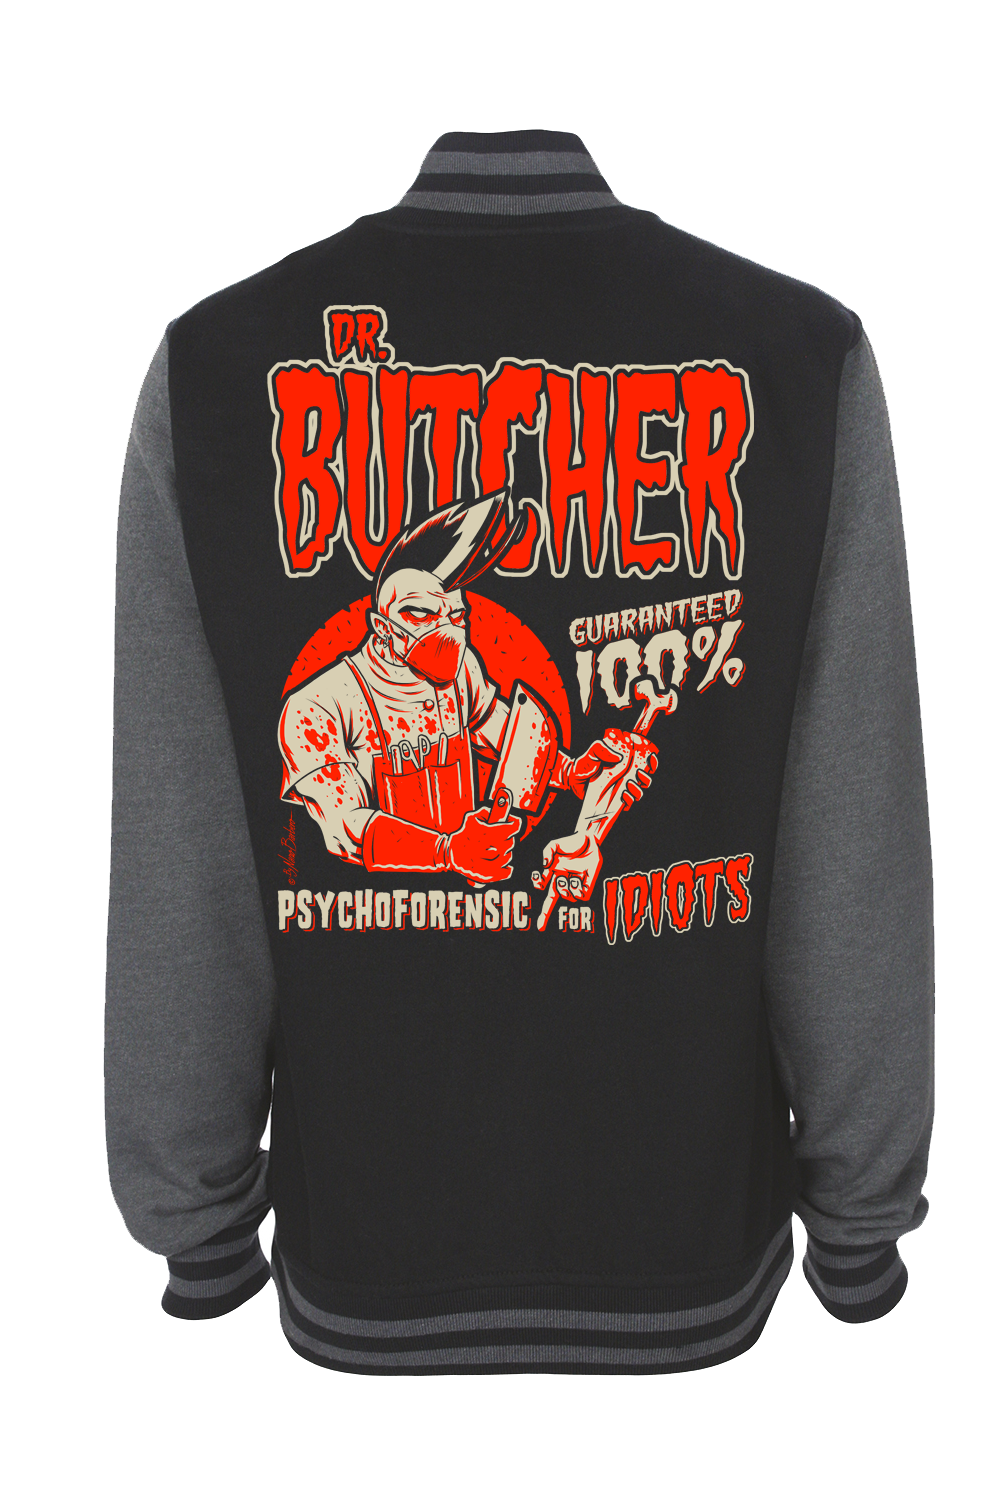 DR. BUTCHER VARSITY JACKET UNISEX BY NANO BARBERO